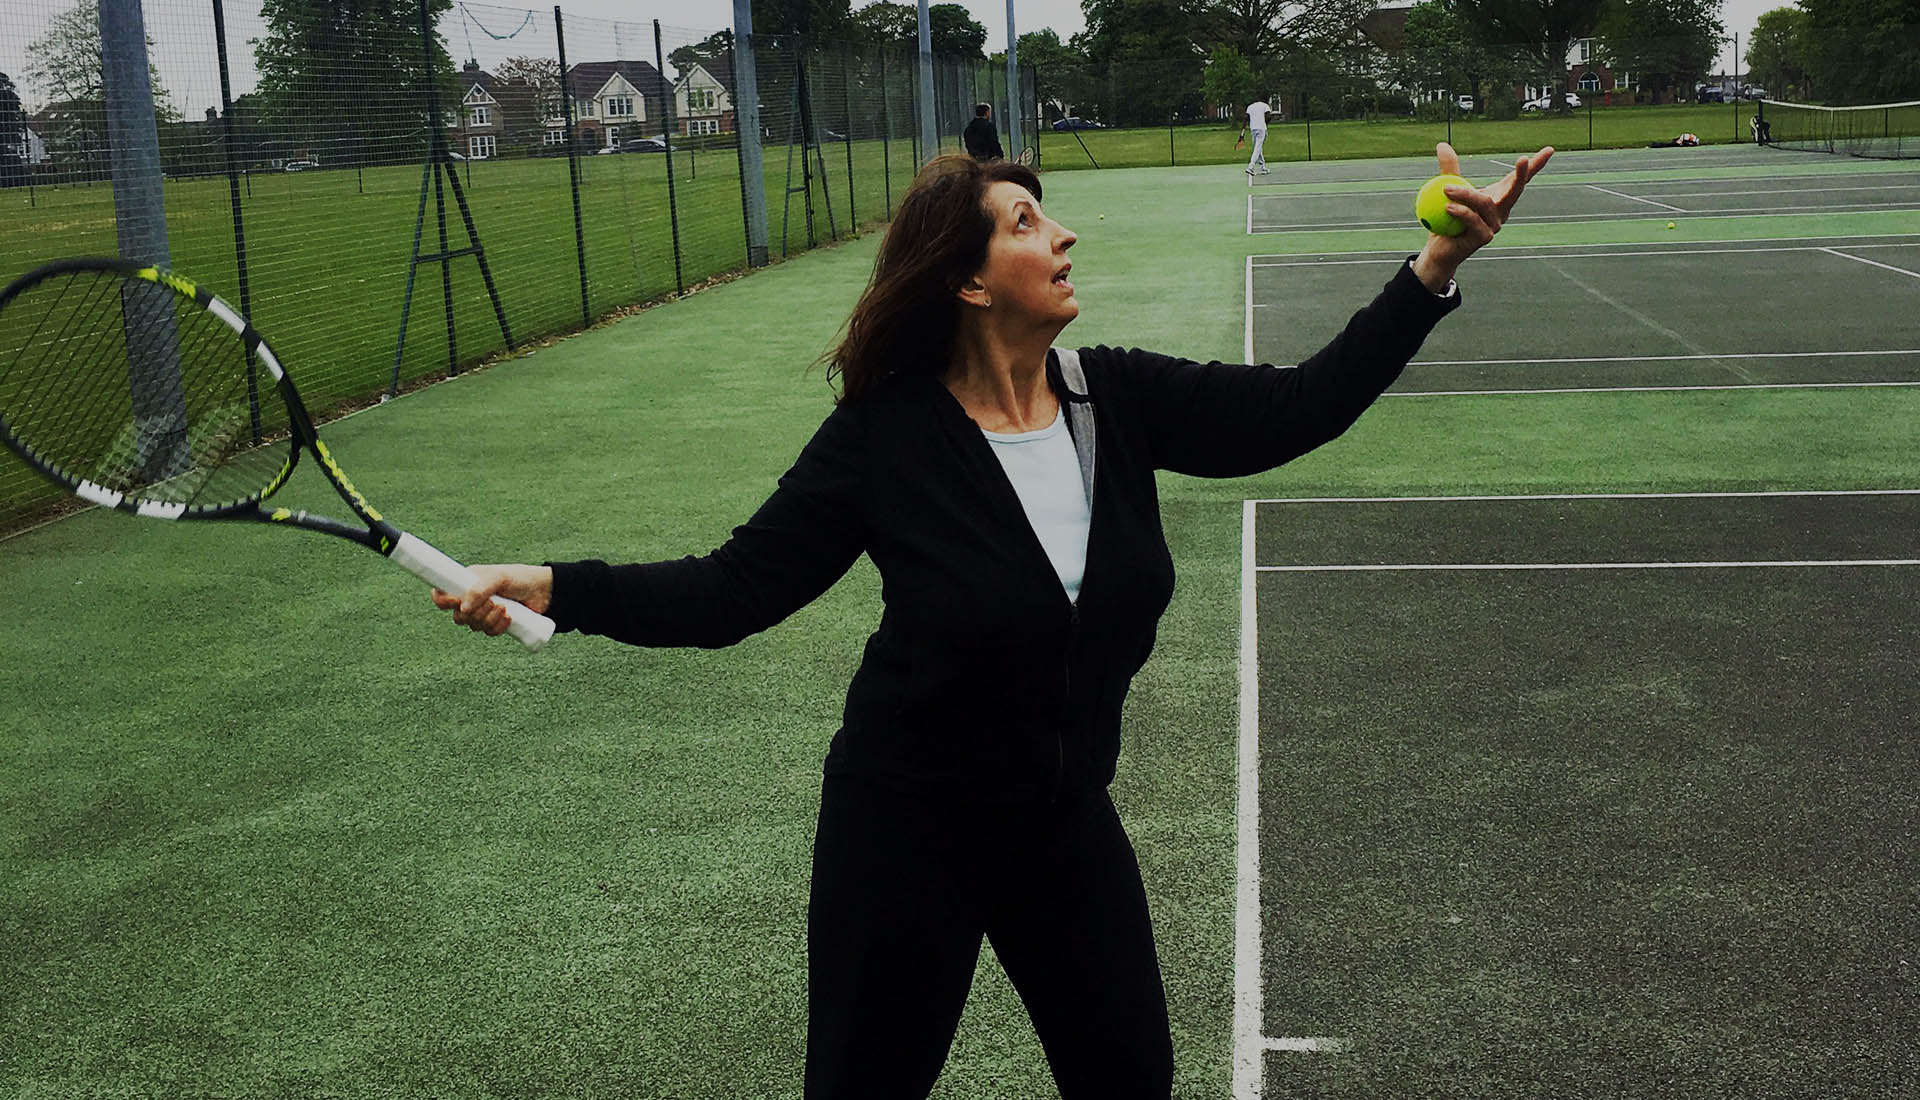 TENNIS FOR ADULTS